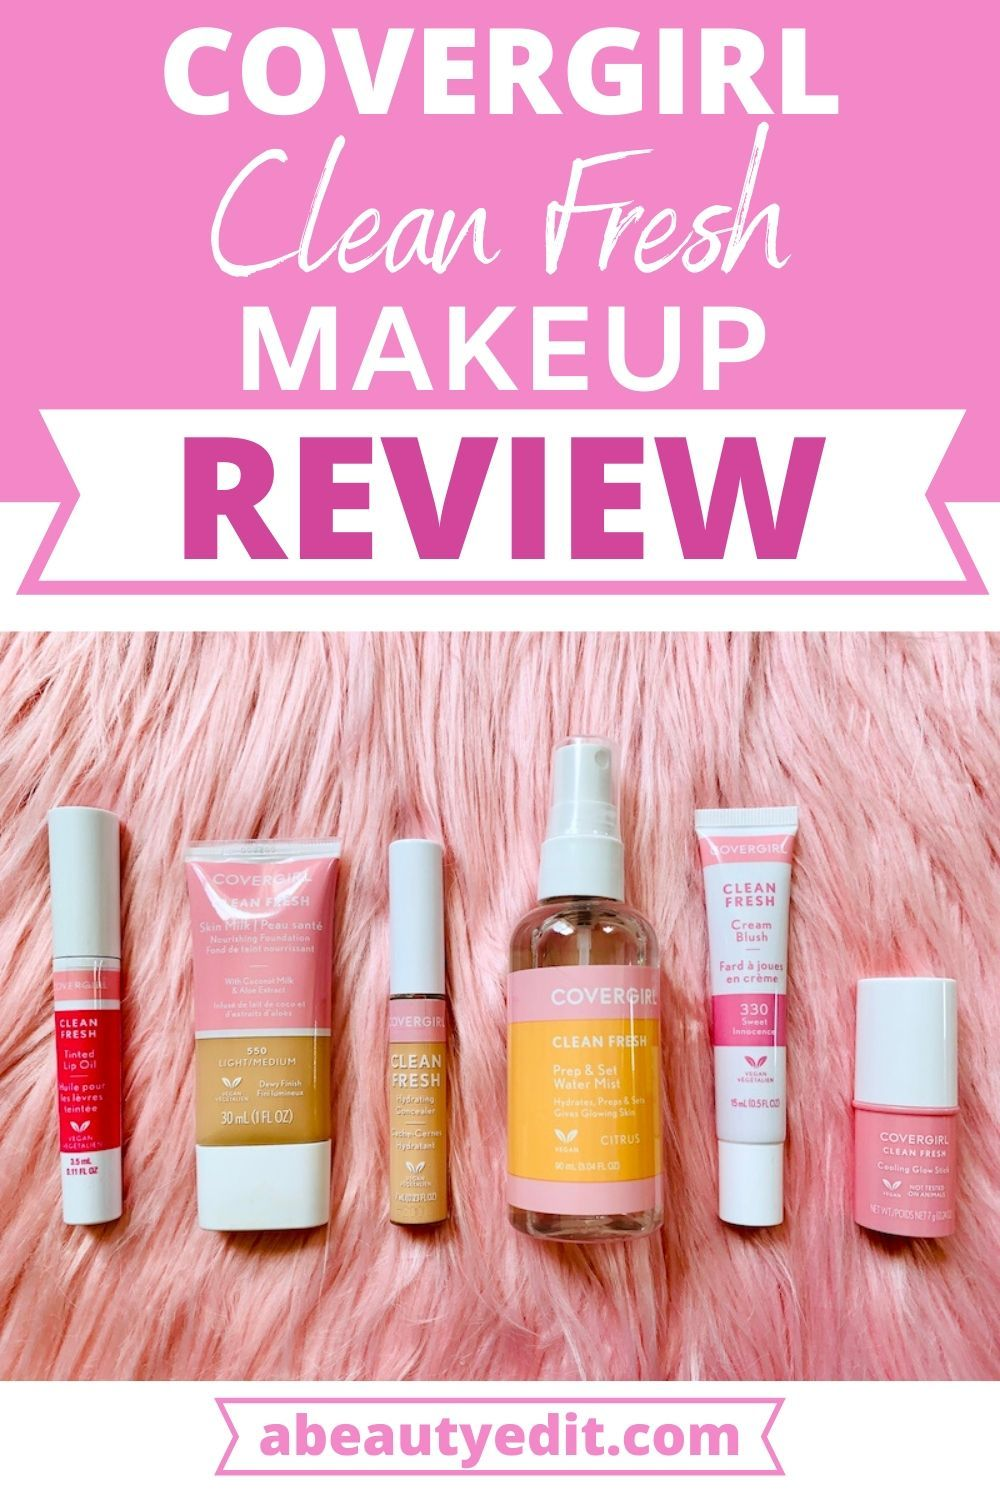 CoverGirl Clean Fresh Makeup Review A Beauty Edit in